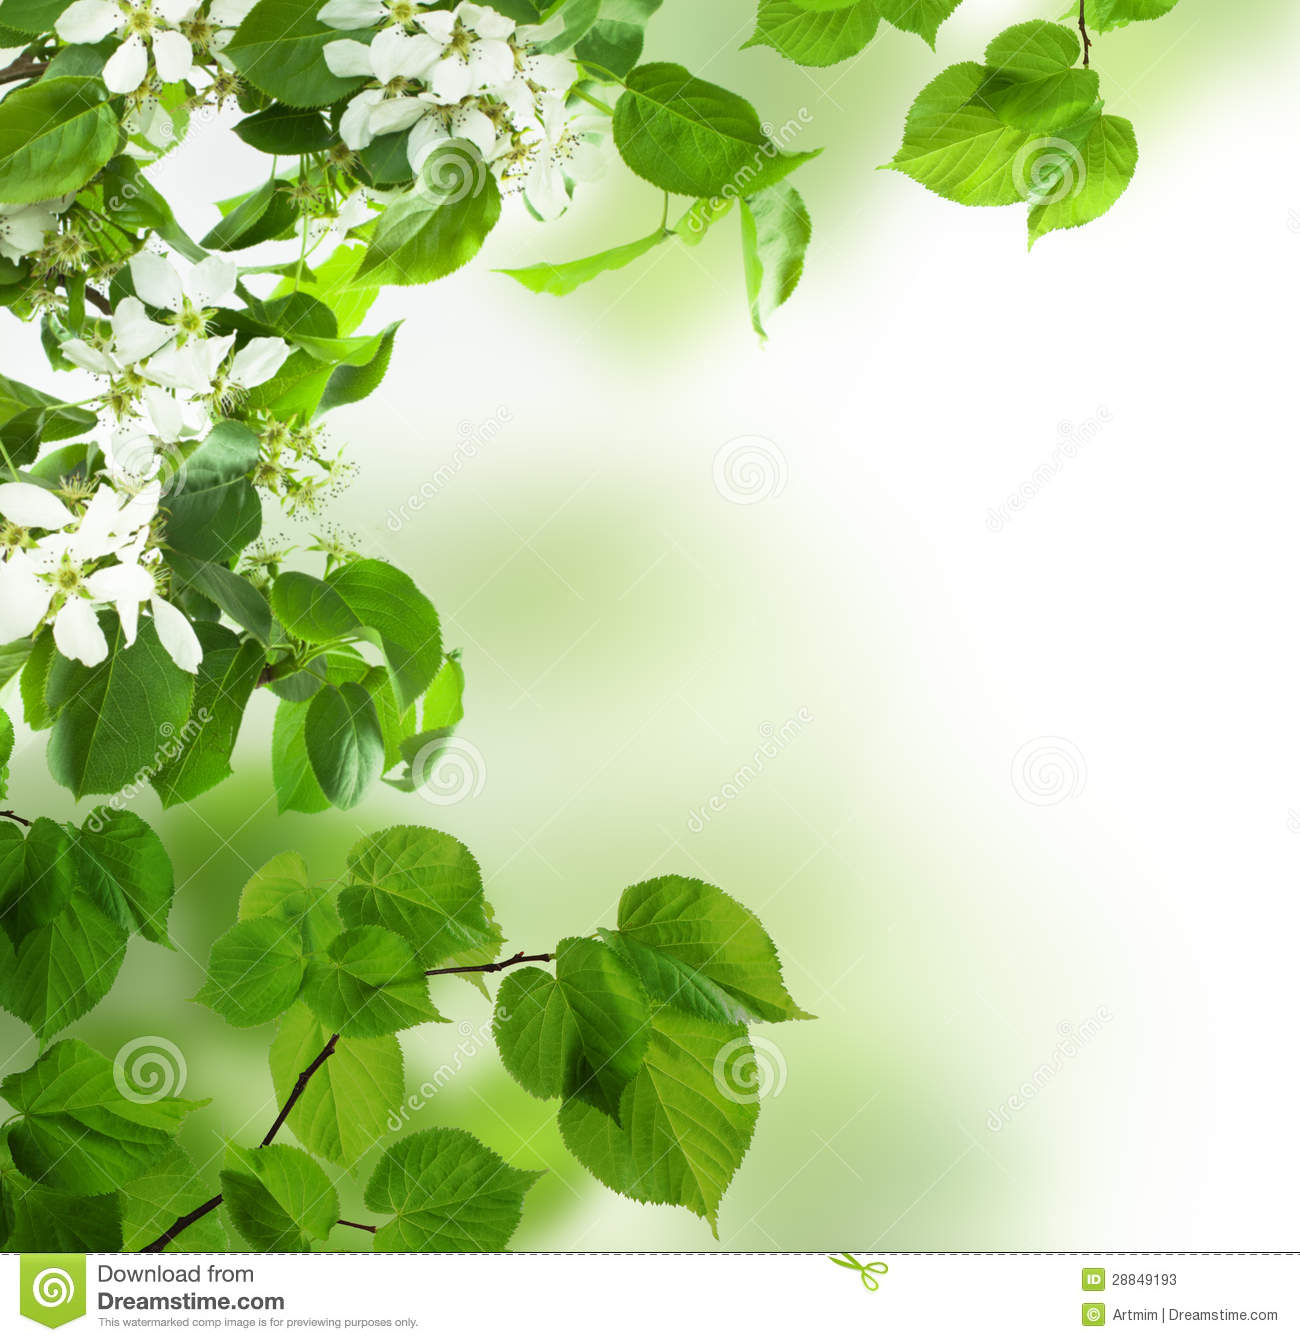 Spring Green Leaves And Flowers Background With Plants: Background, Spring Leaves And Flowers Stock Photos